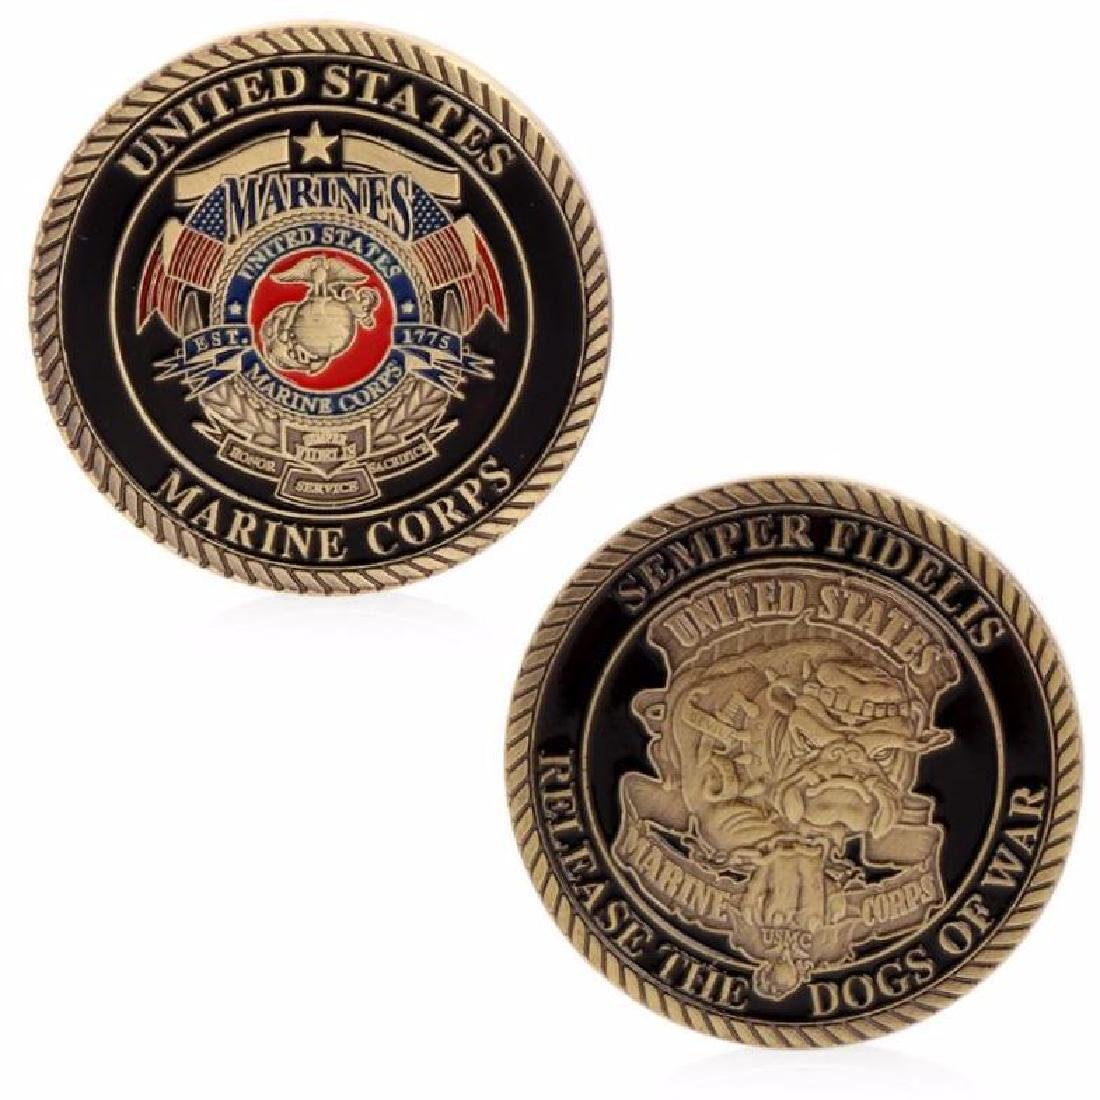 USA Marines Colored Gold Clad Challenge Coin